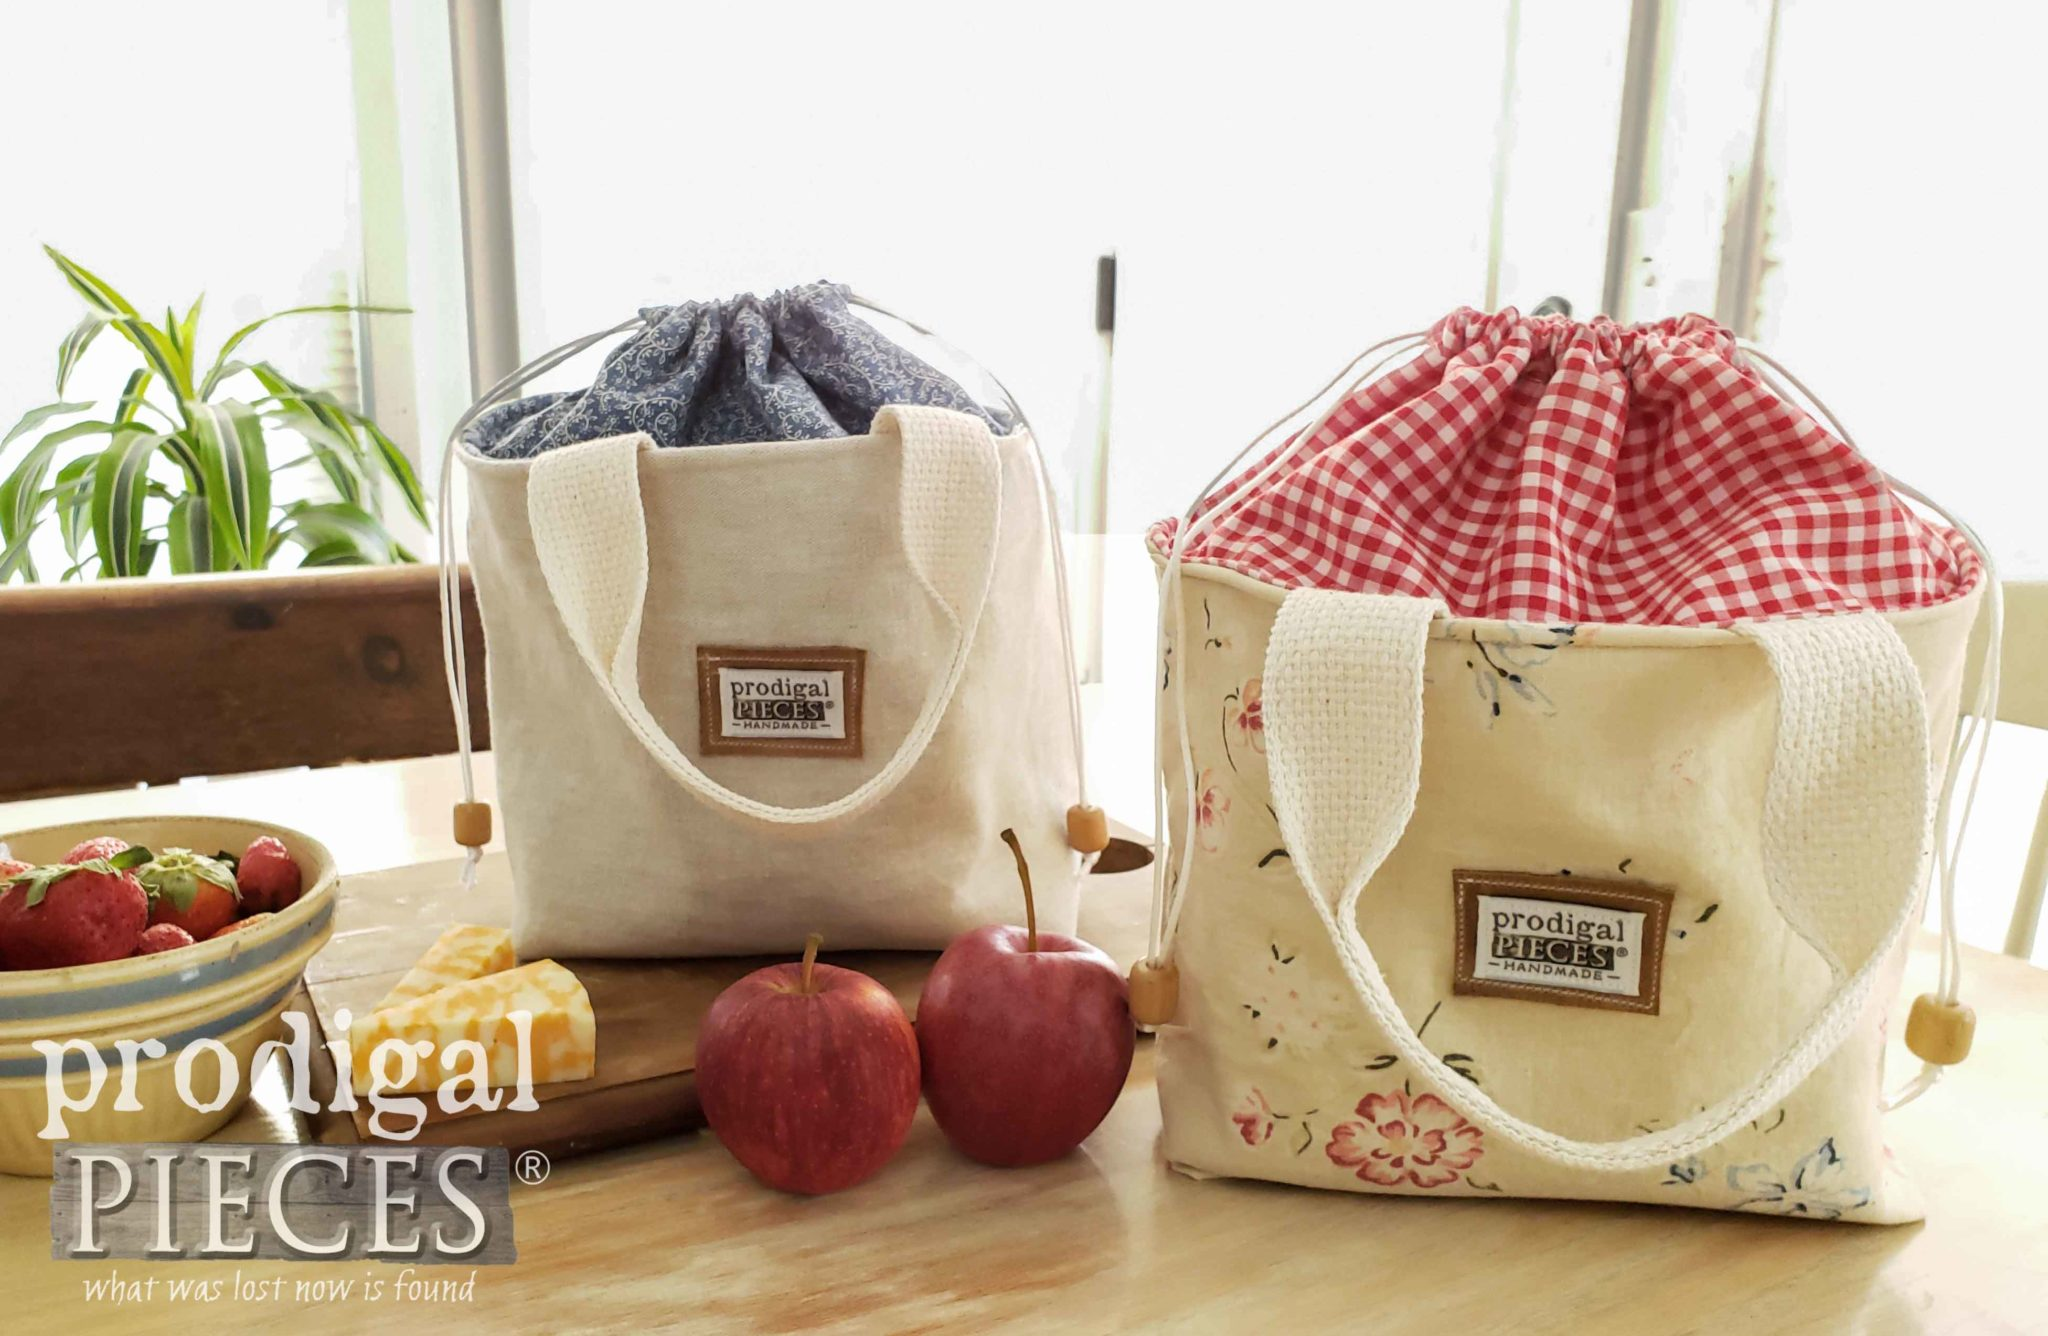 Red and Blue Linen Lunch Bags by Prodigal Pieces | prodigalpieces.com #prodigalpieces #handmade